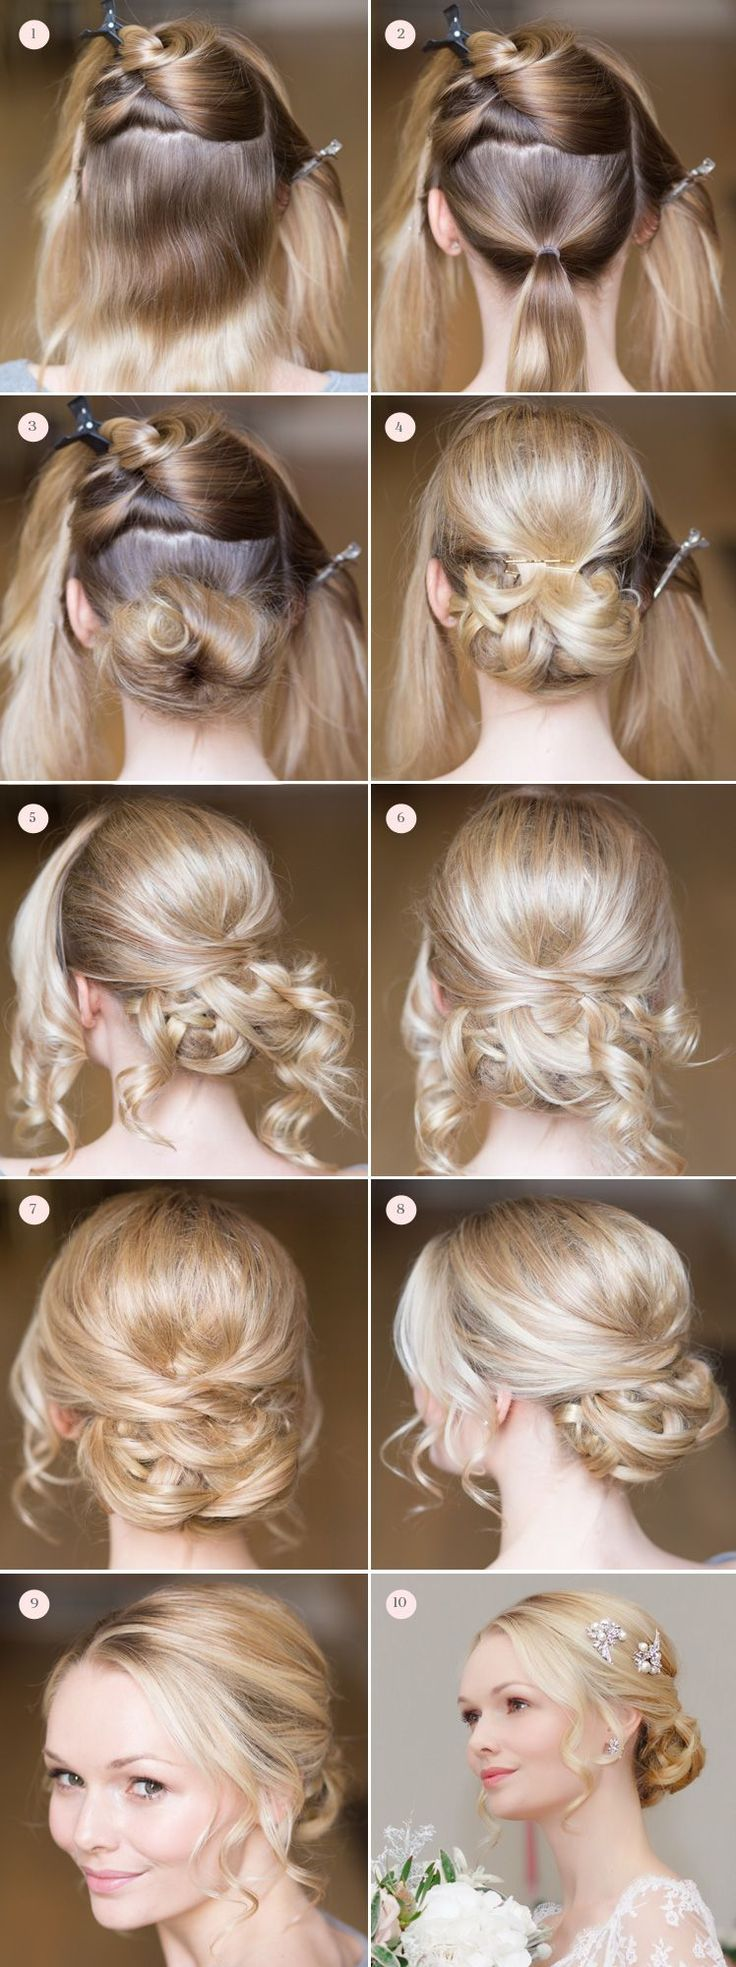 best 25+ updo tutorial ideas on pinterest | easy upstyles, grad